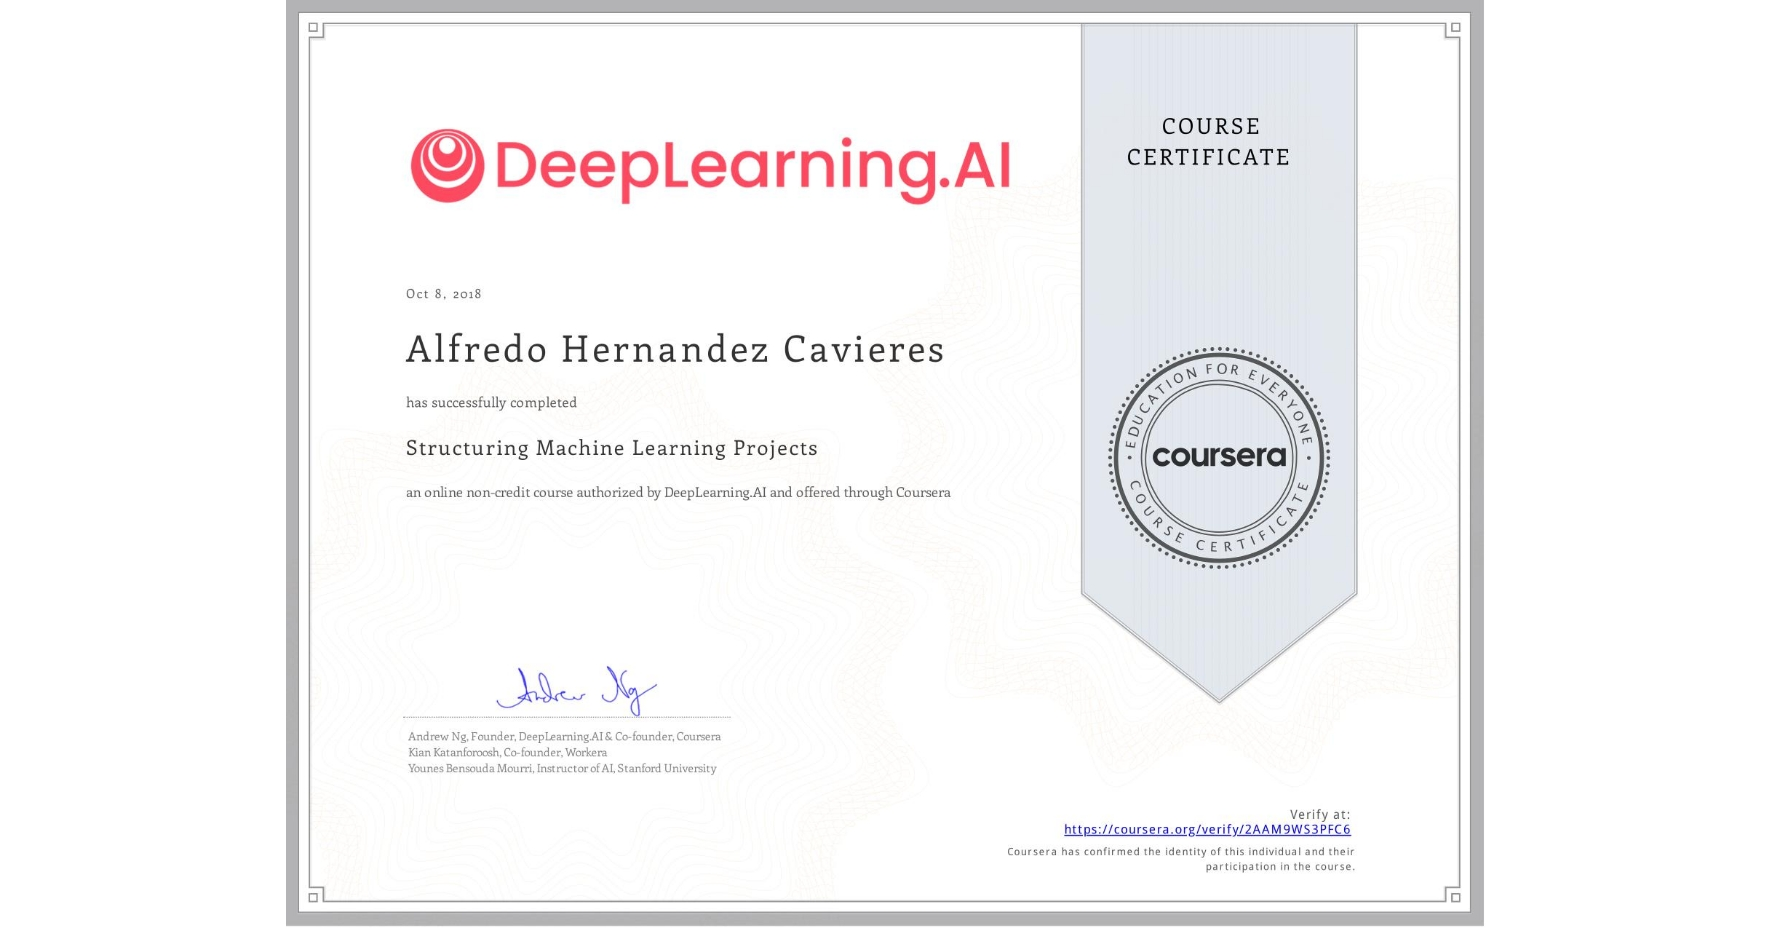 View certificate for Alfredo Hernandez Cavieres, Structuring Machine Learning Projects, an online non-credit course authorized by DeepLearning.AI and offered through Coursera